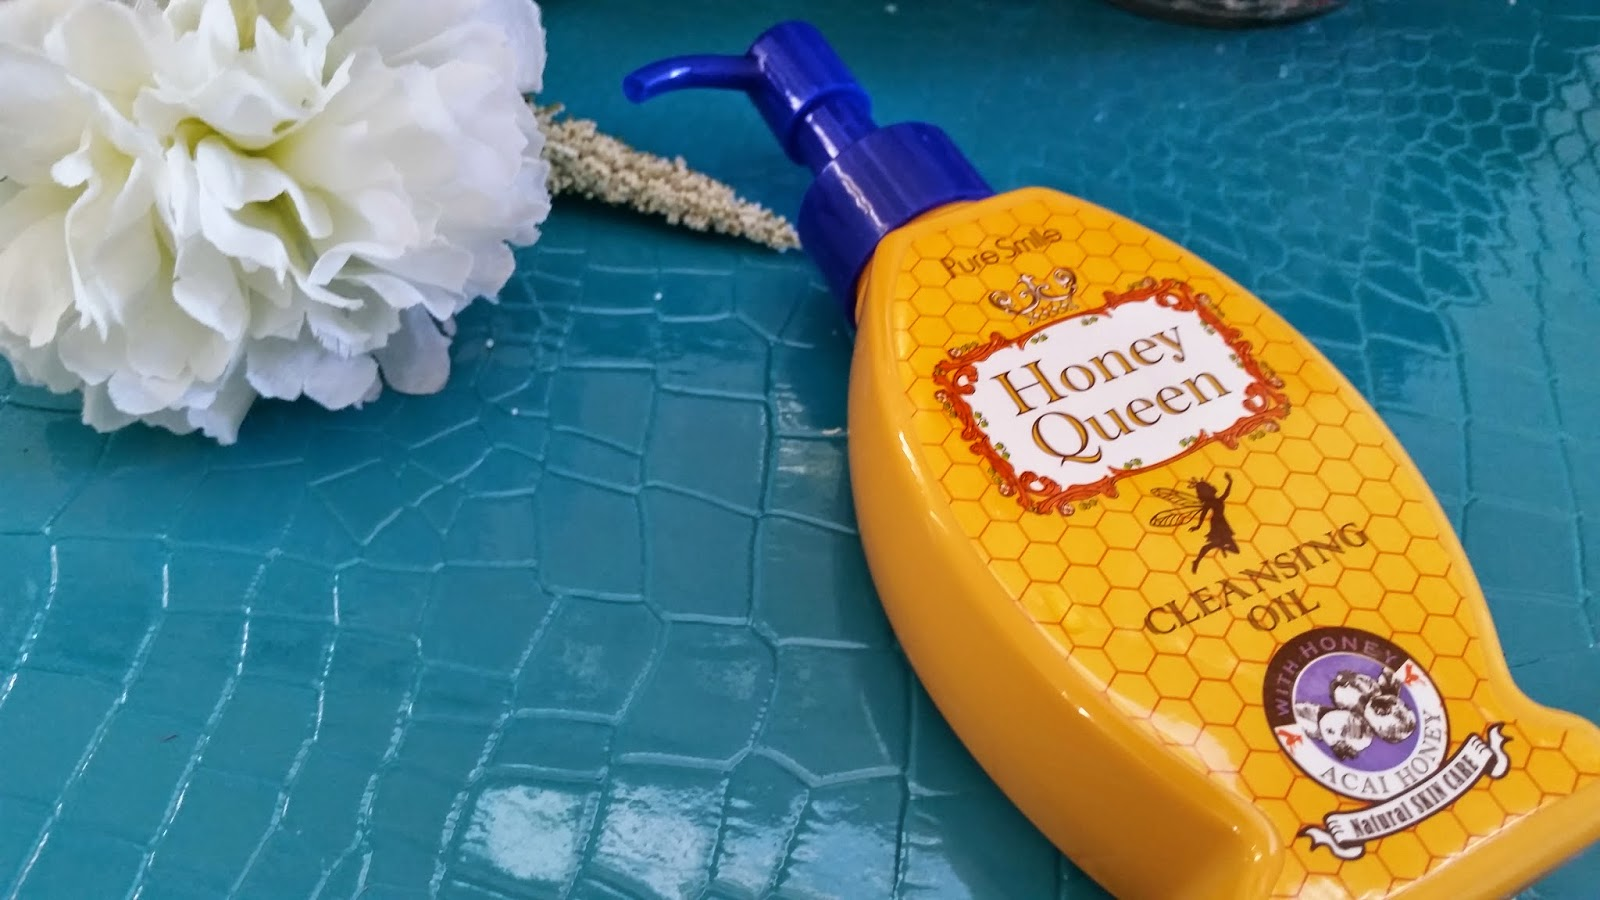 Pure Smile Honey Queen Cleansing Oil Review